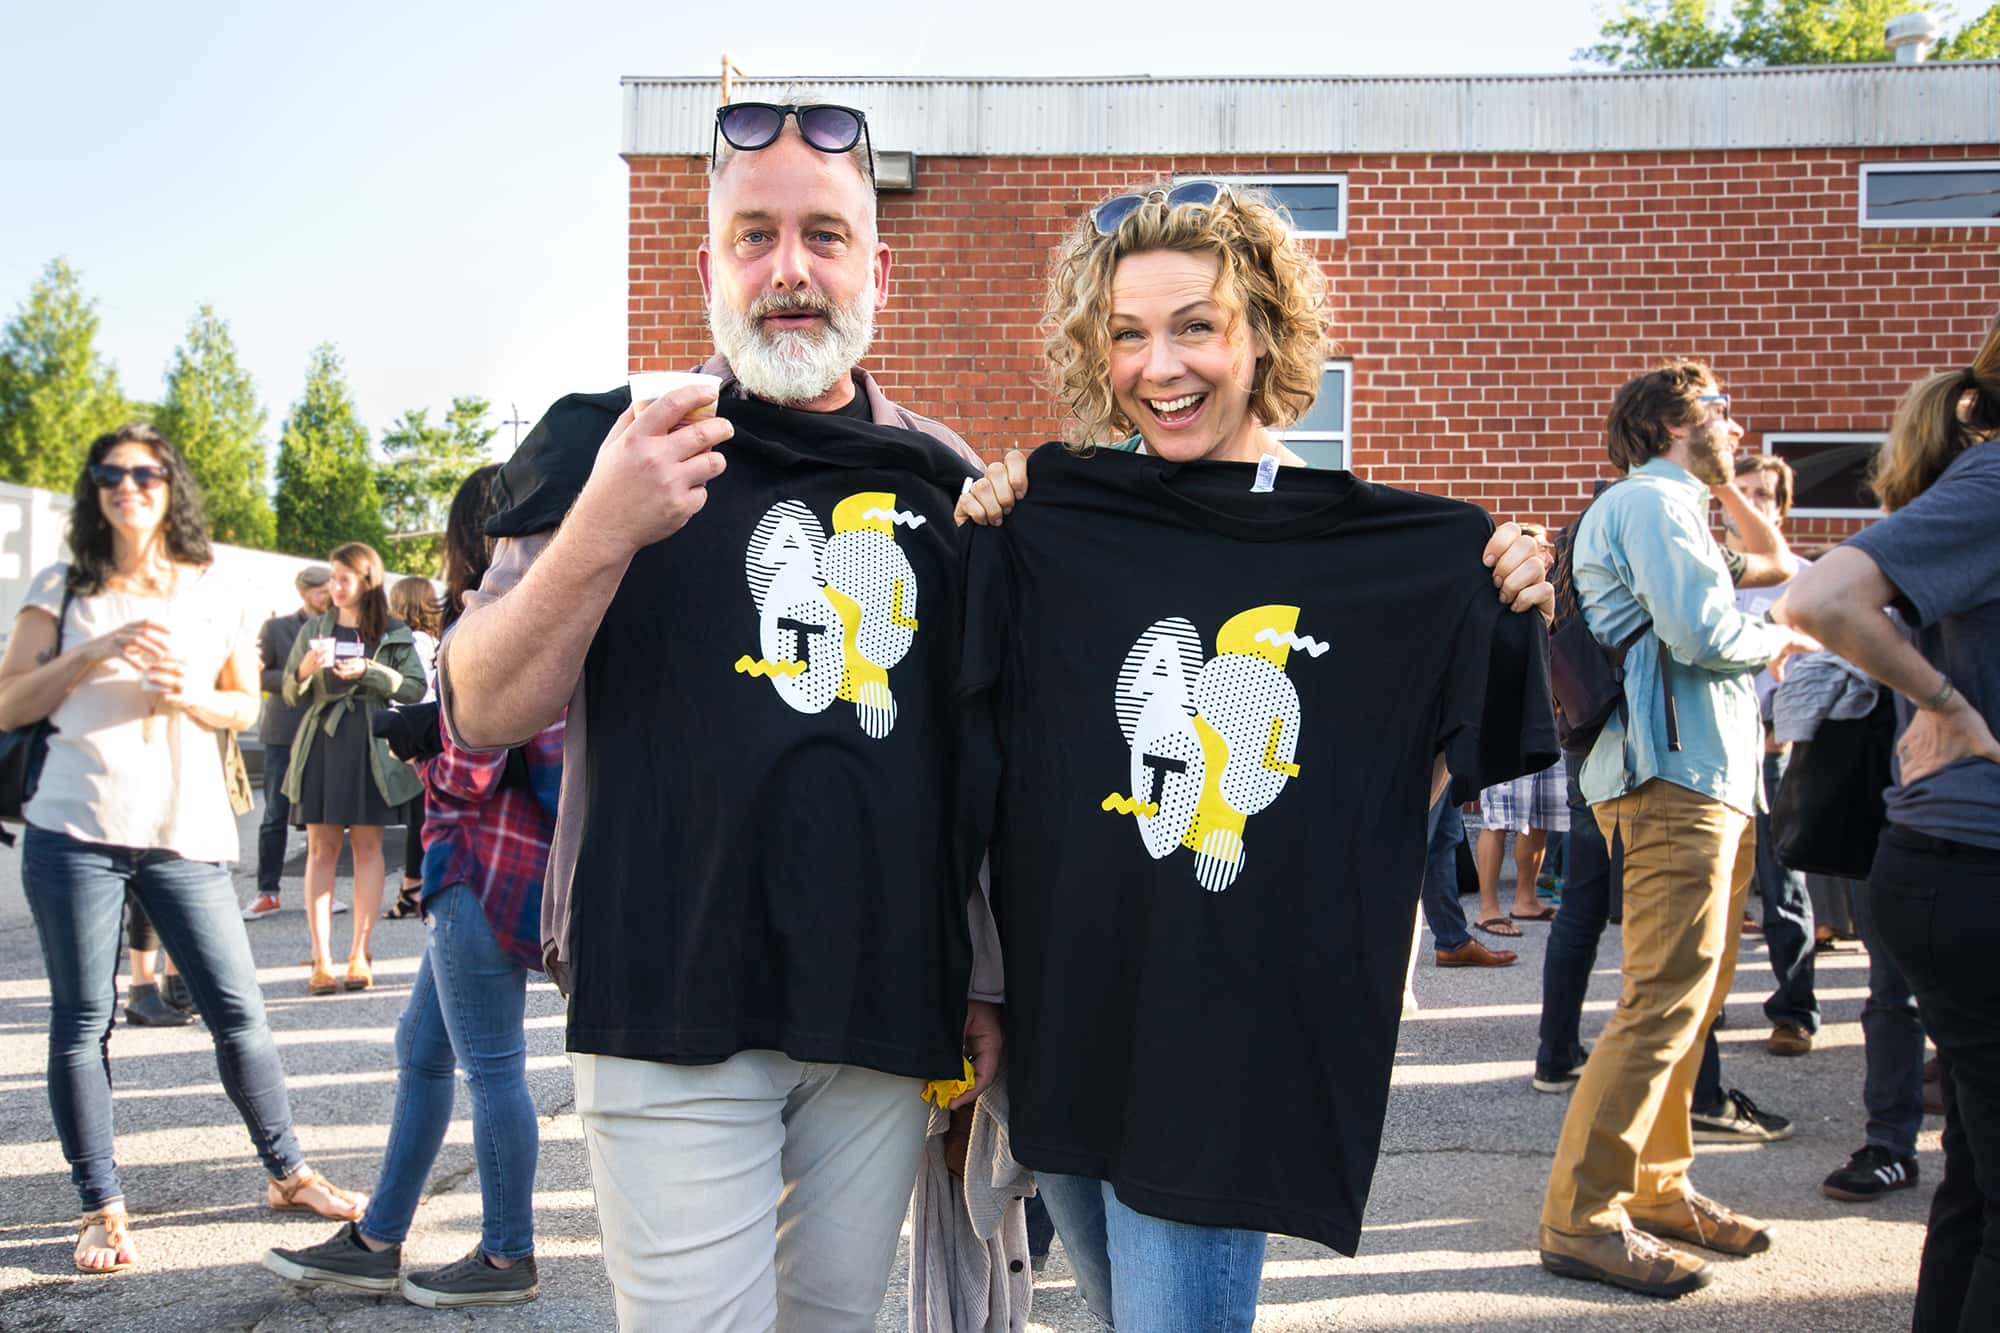 Two attendees posing while holding their event t-shirts.